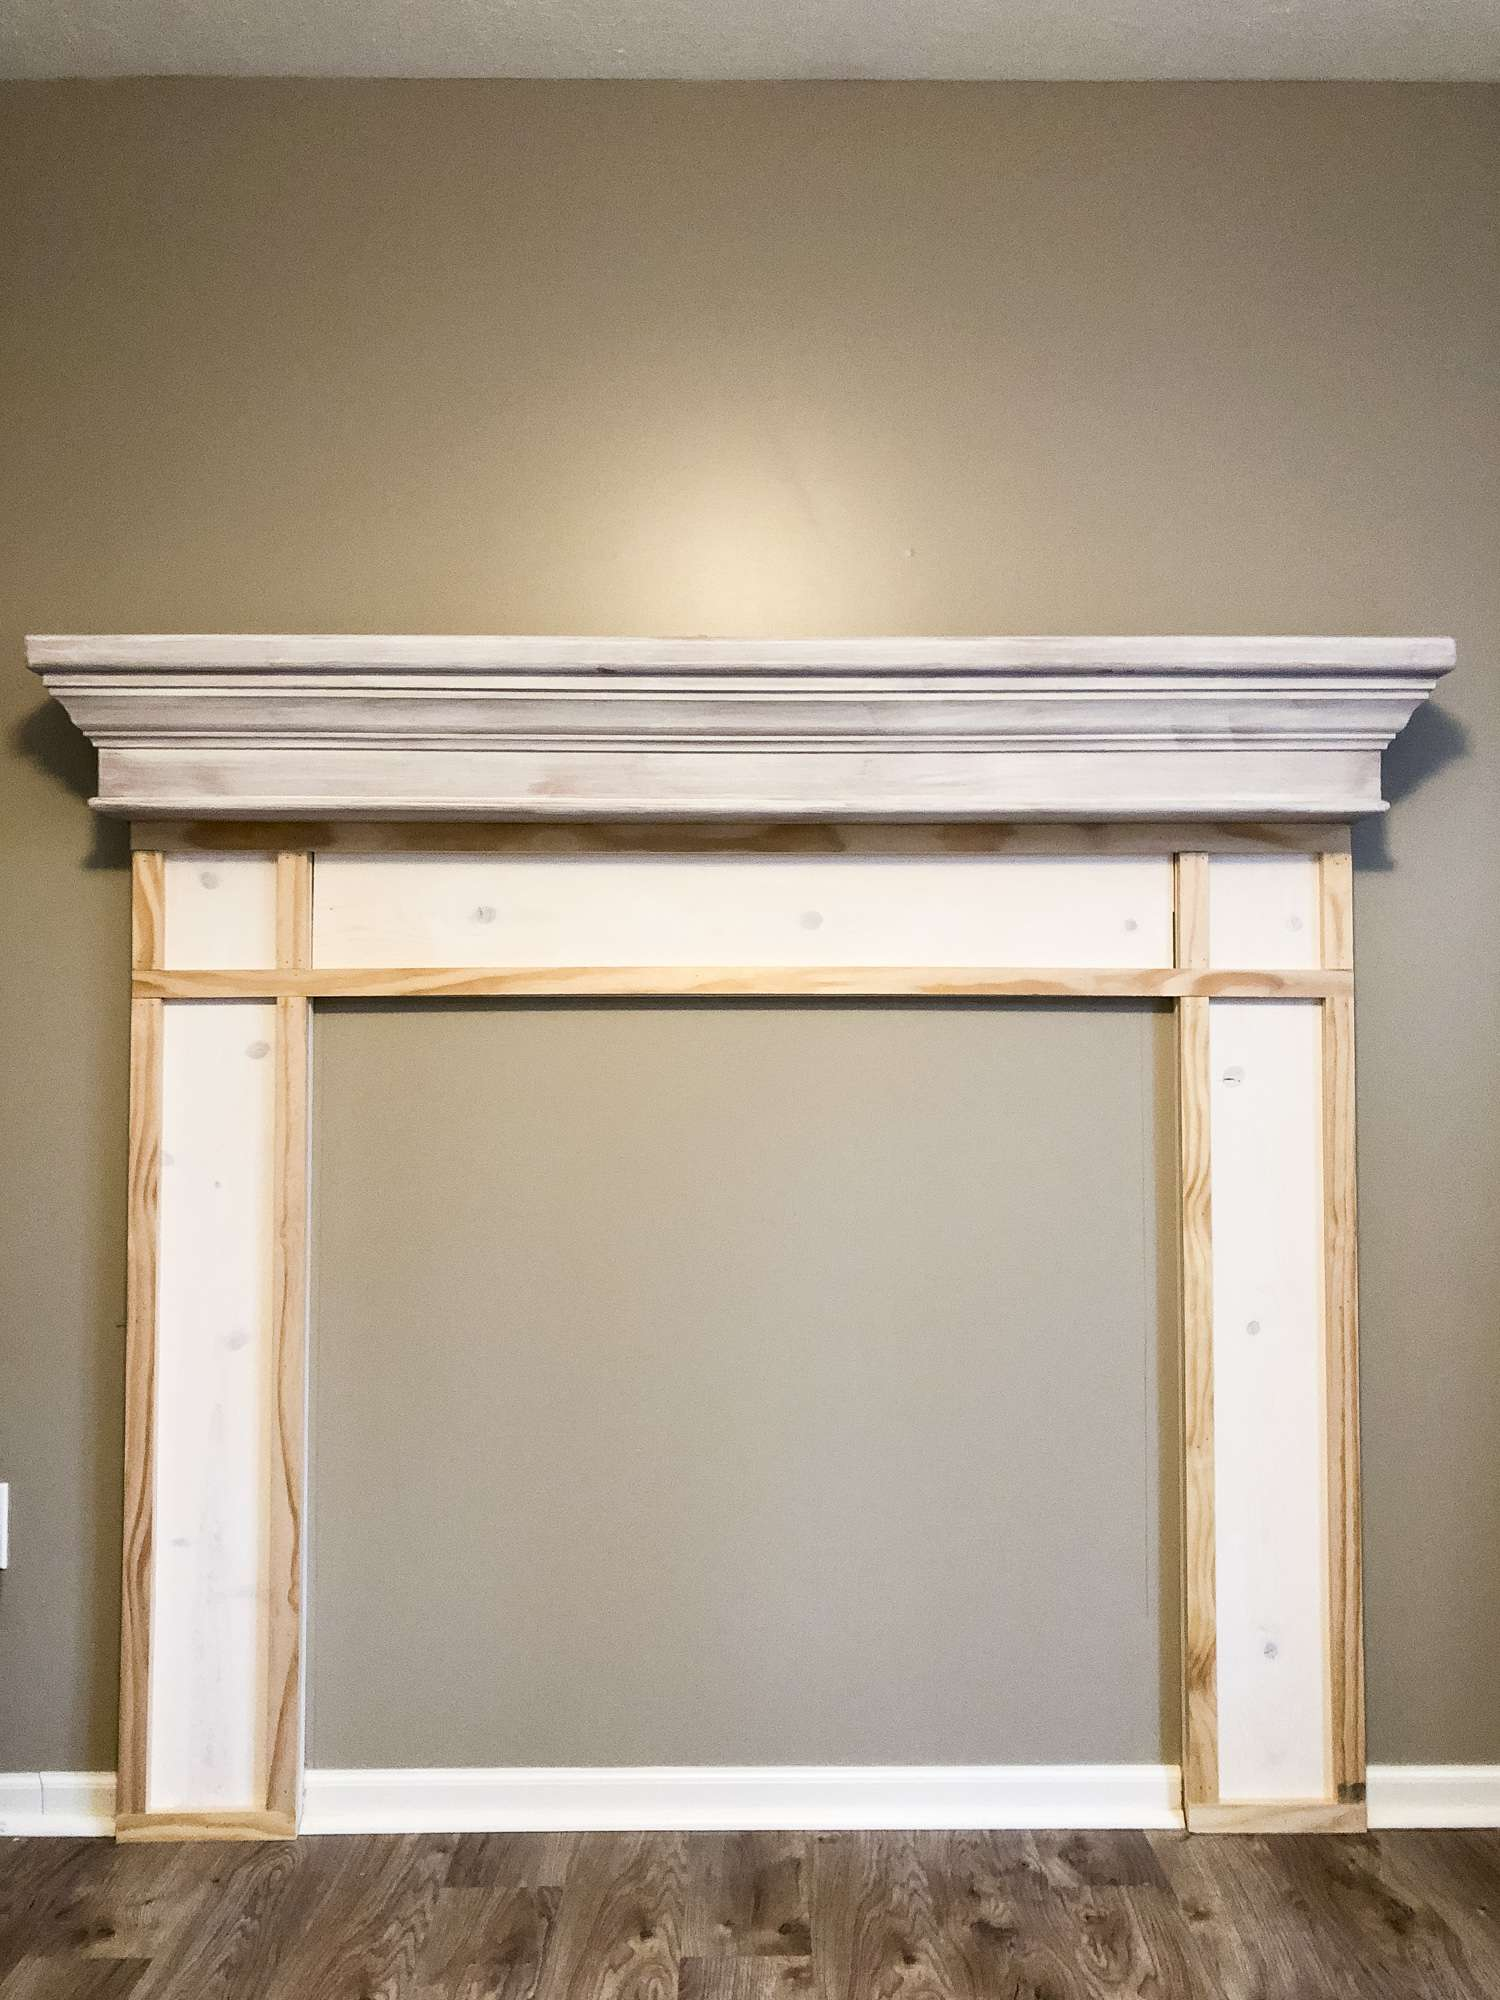 Building a fireplace mantel.